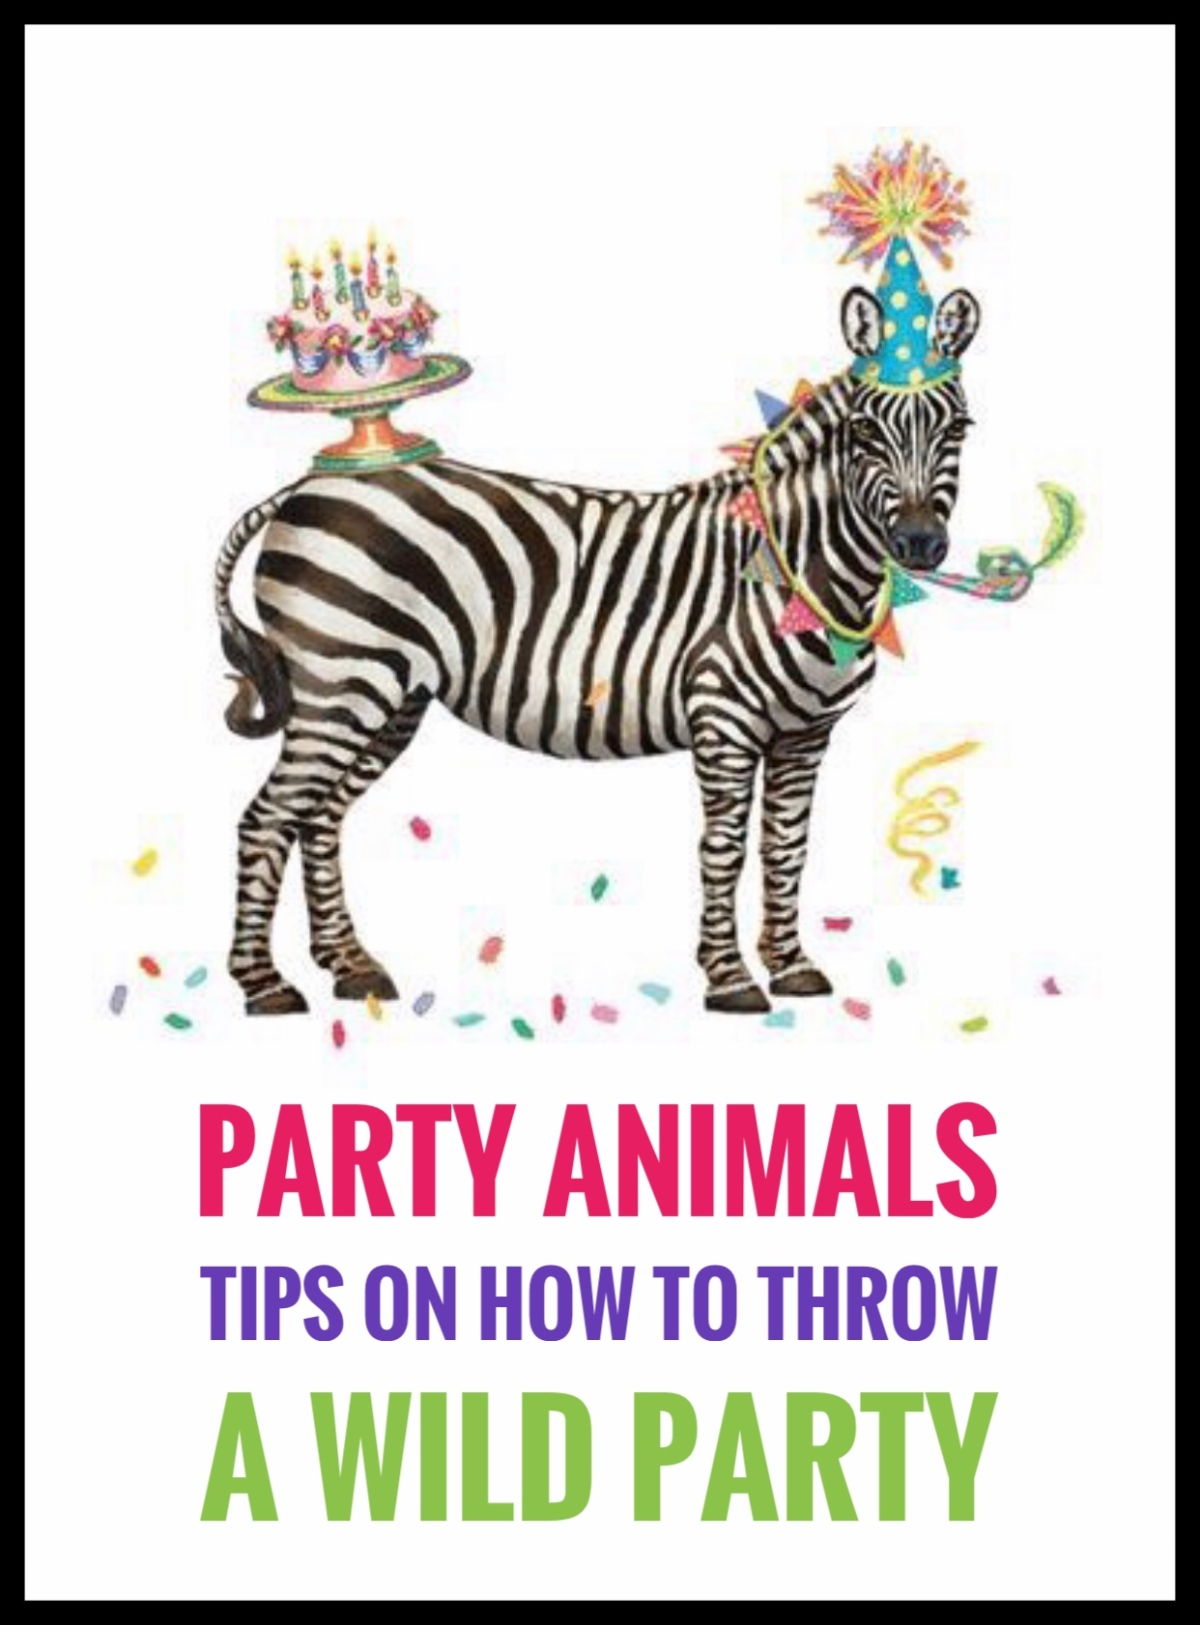 Party Animals – Tips On How To Throw A Wild Party